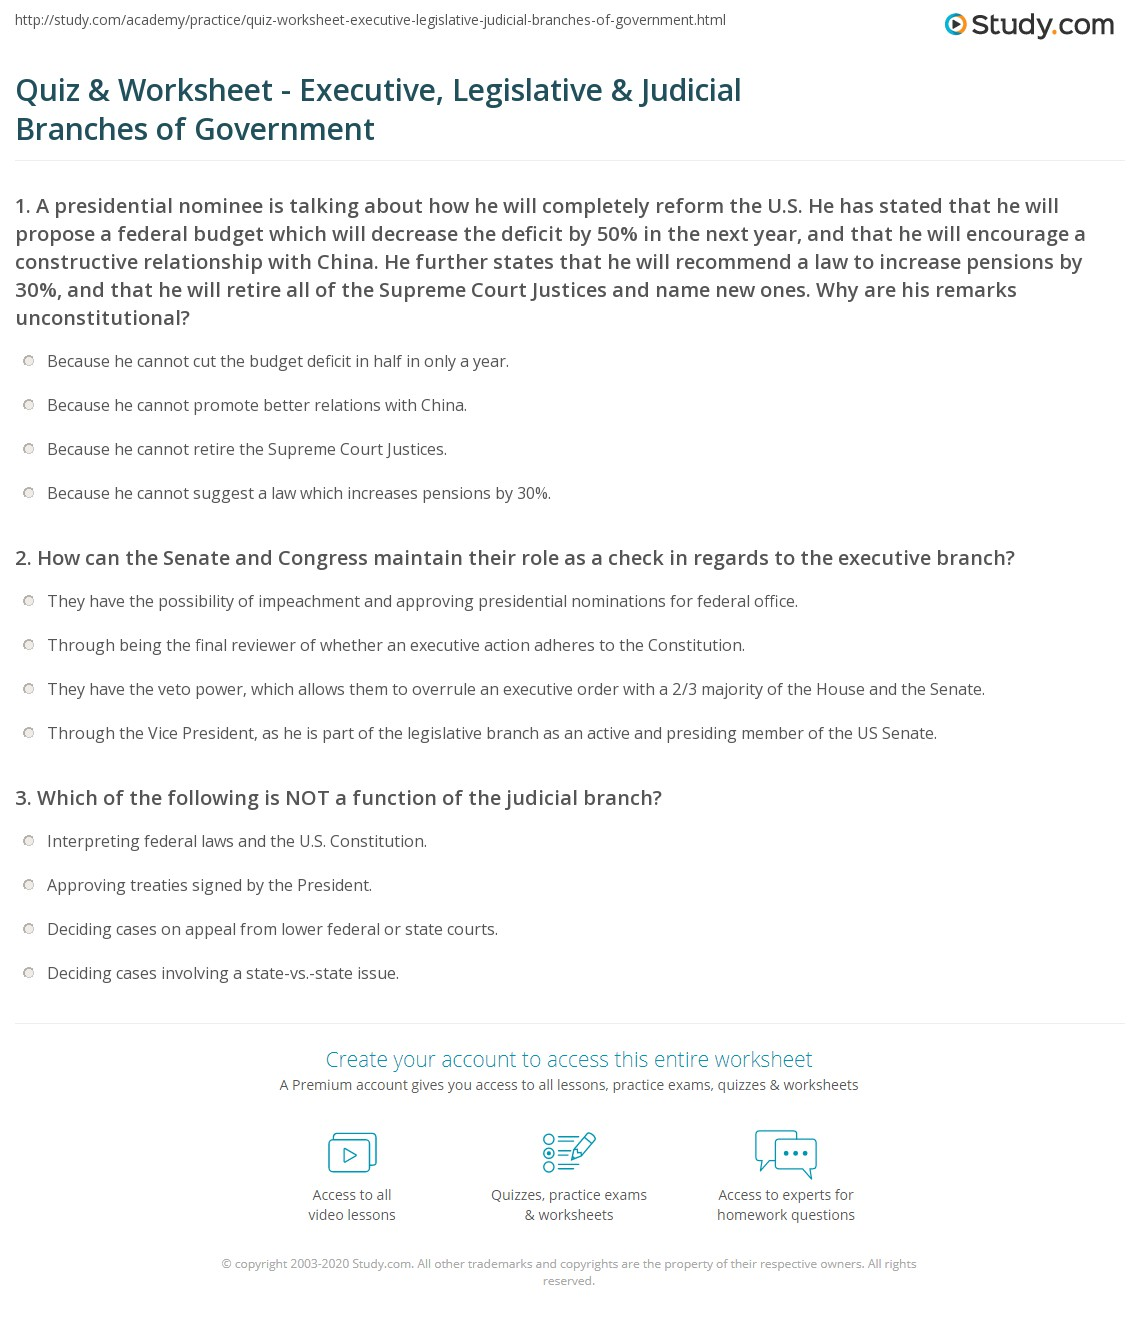 Printables Branches Of Government Worksheet quiz worksheet executive legislative judicial branches of print the 3 government worksheet